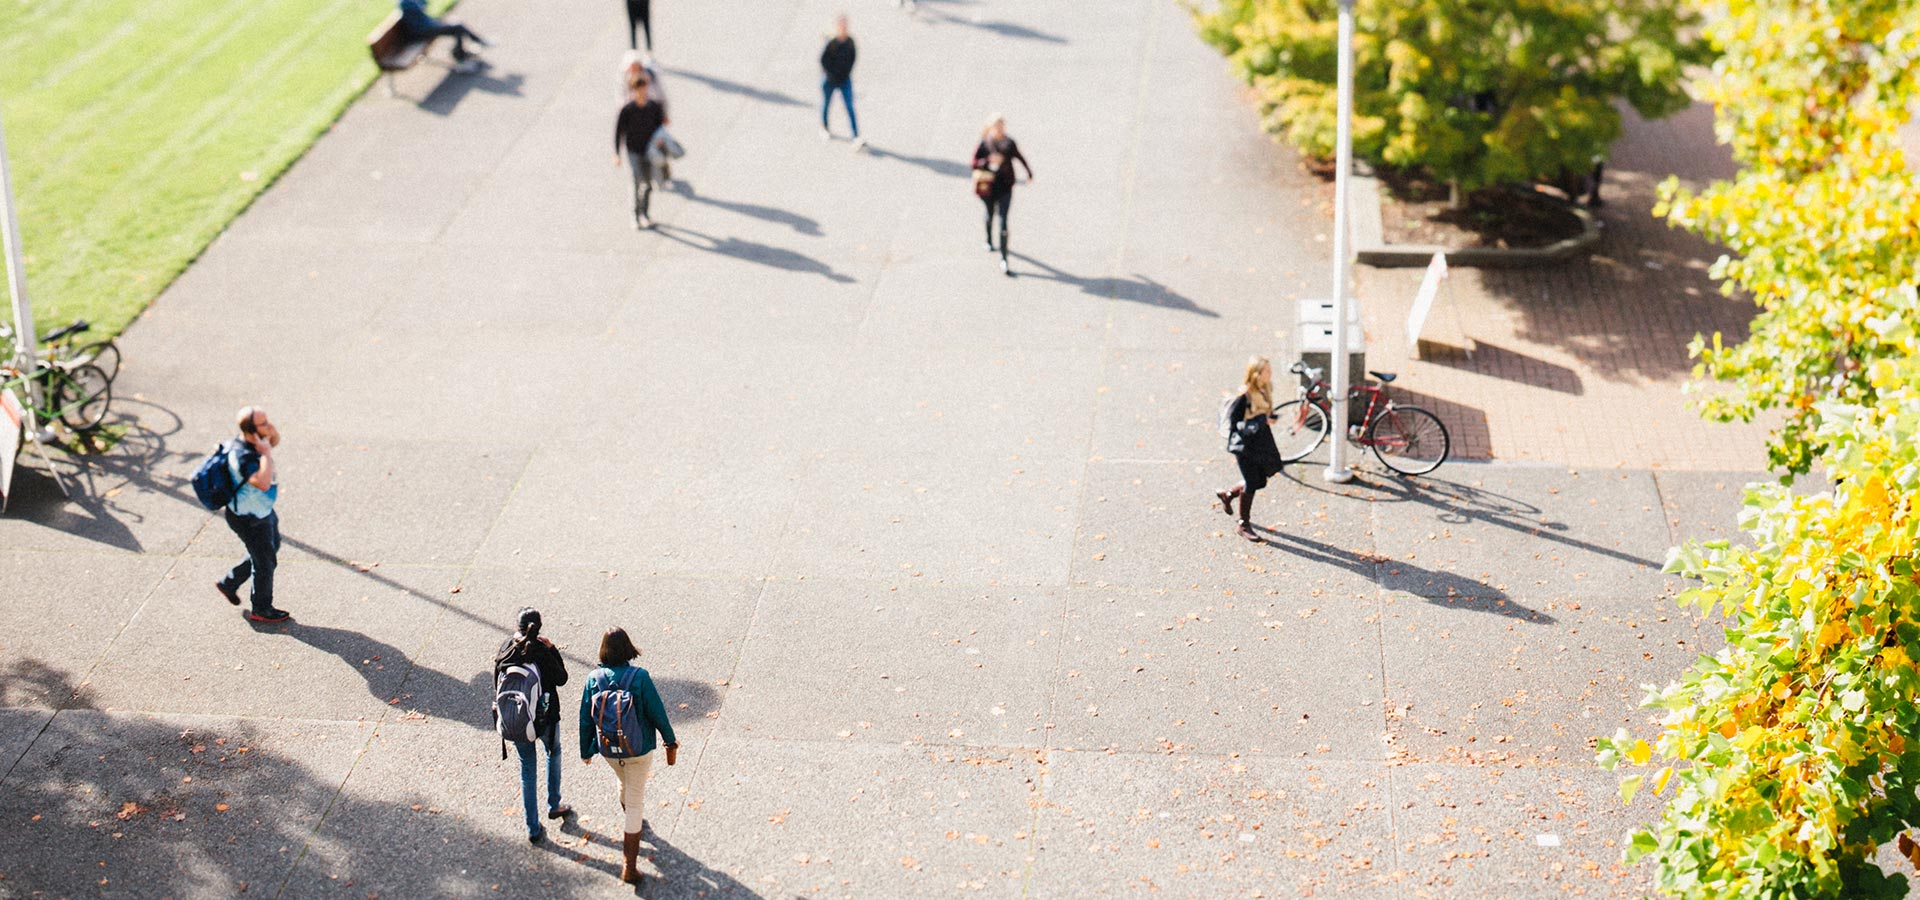 IVC students walking on campus